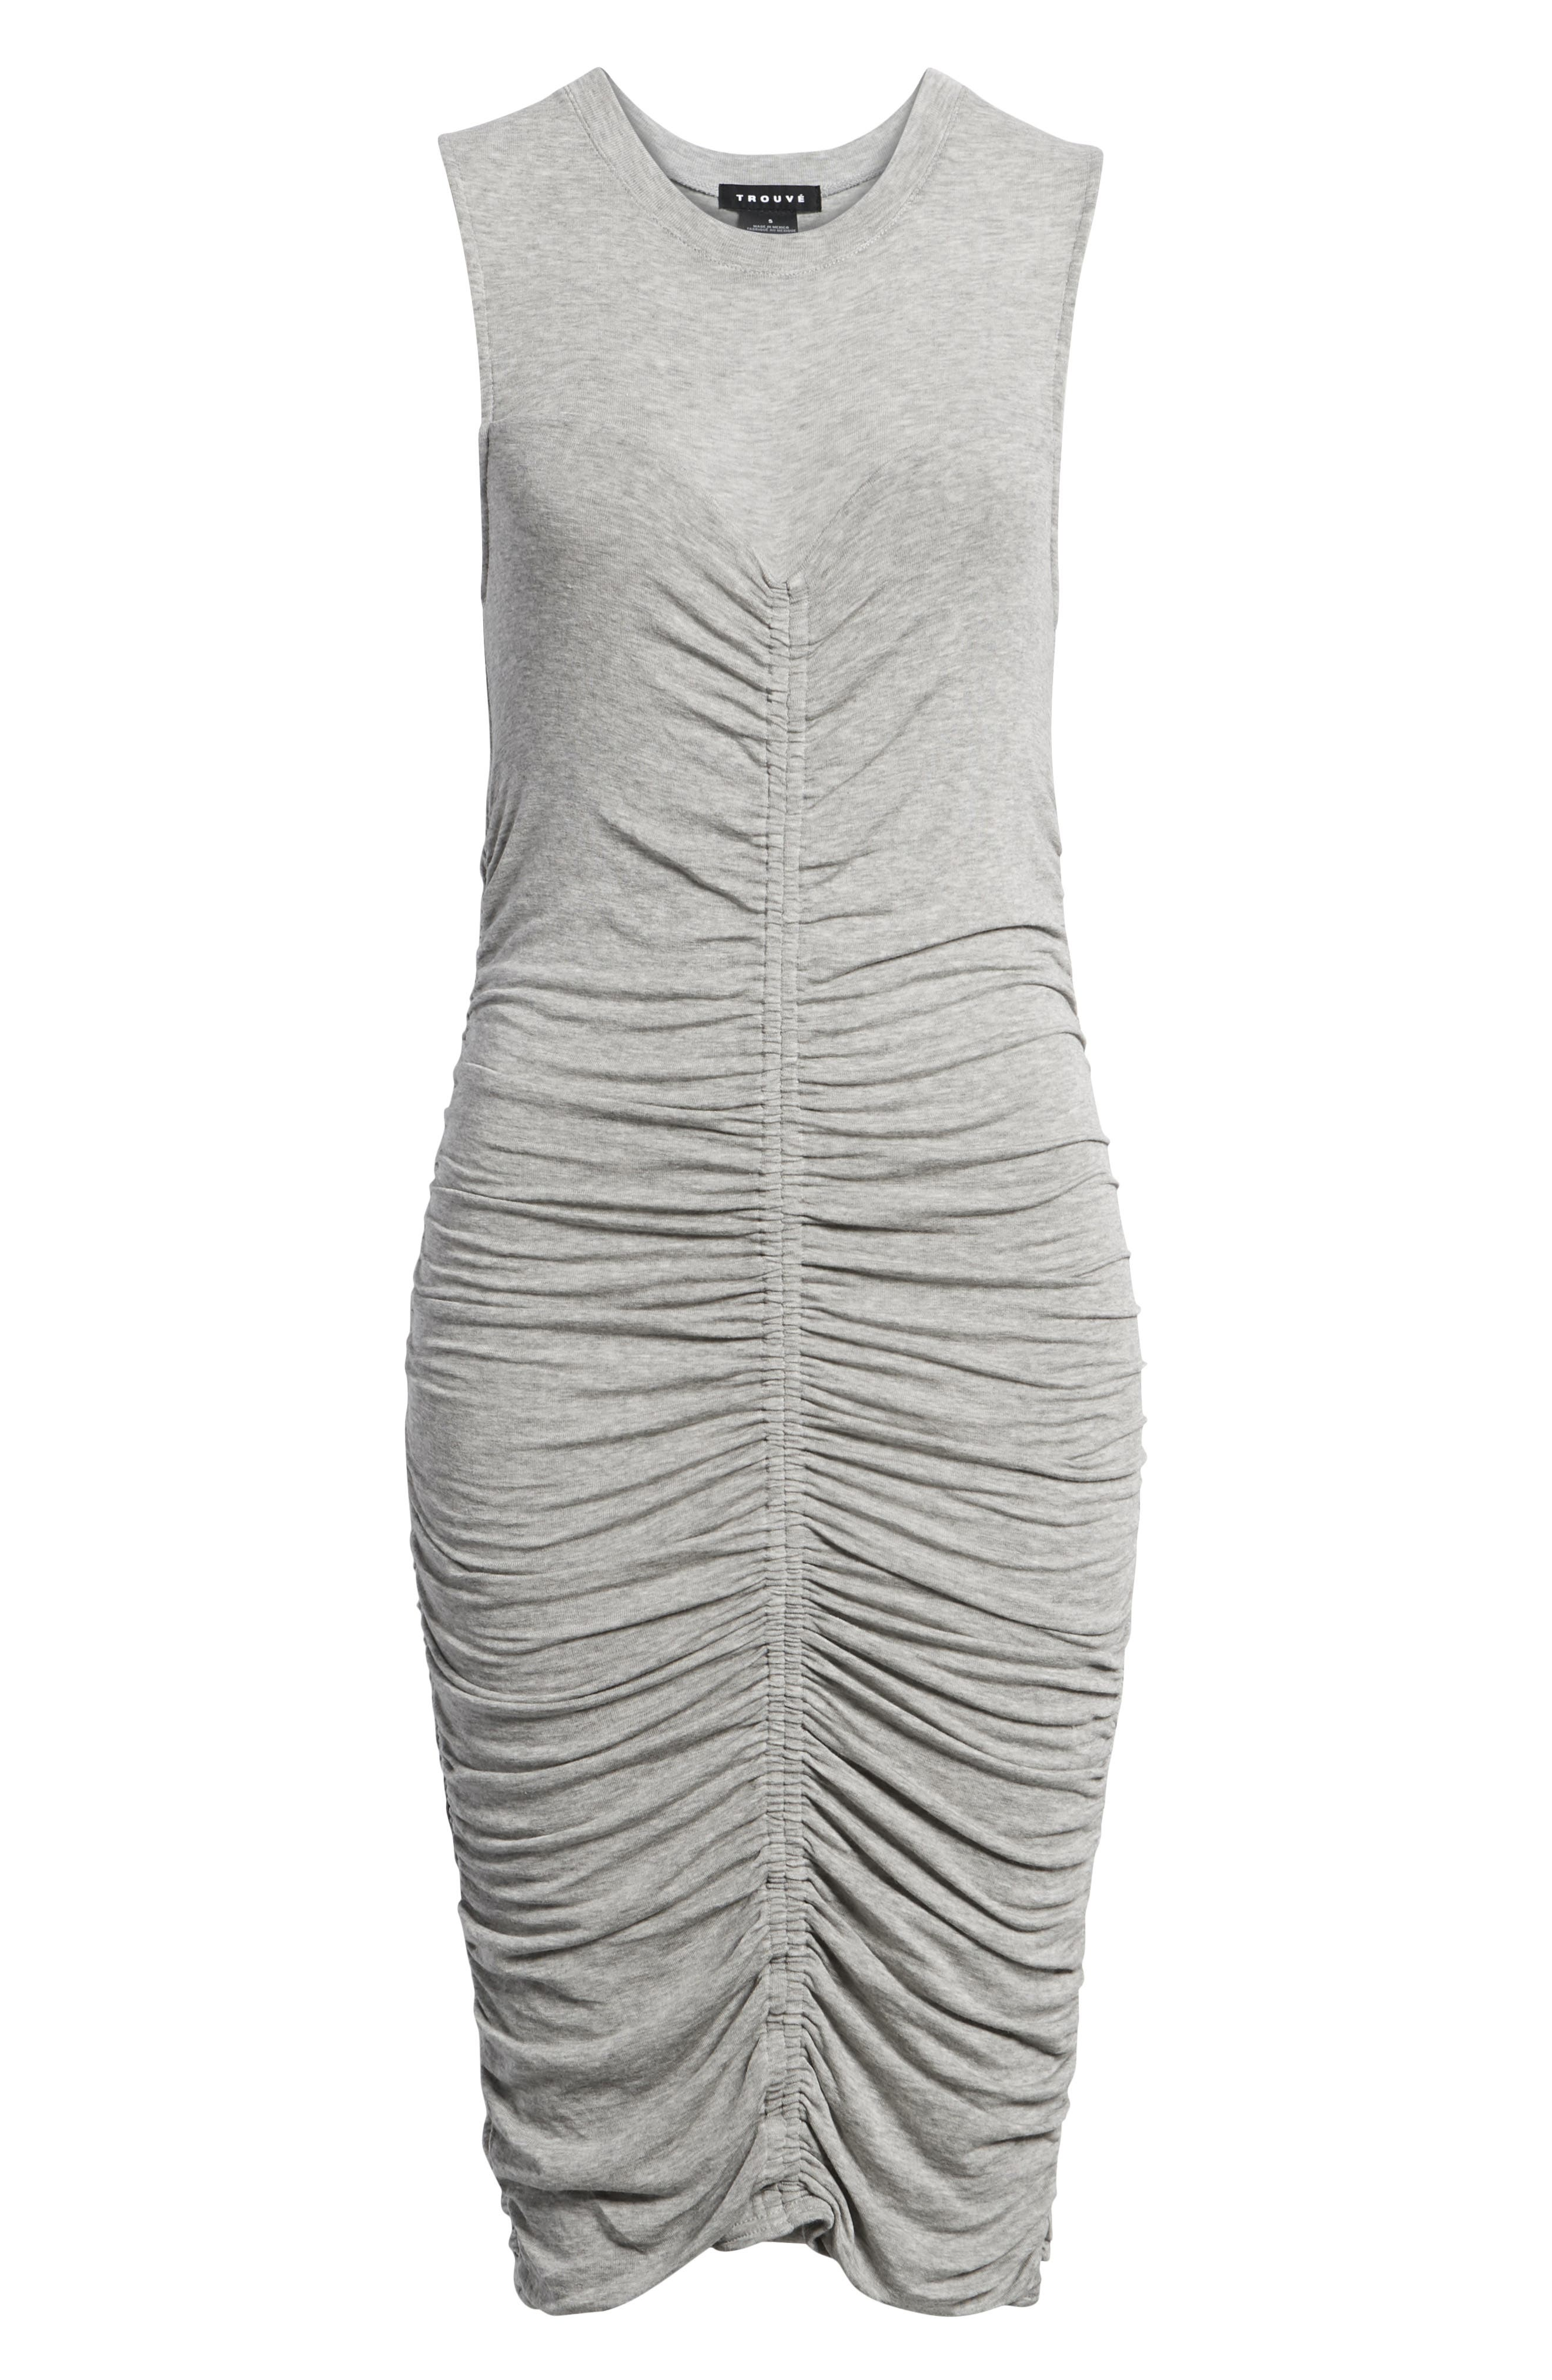 Shirred Dress,                             Alternate thumbnail 7, color,                             Grey Heather